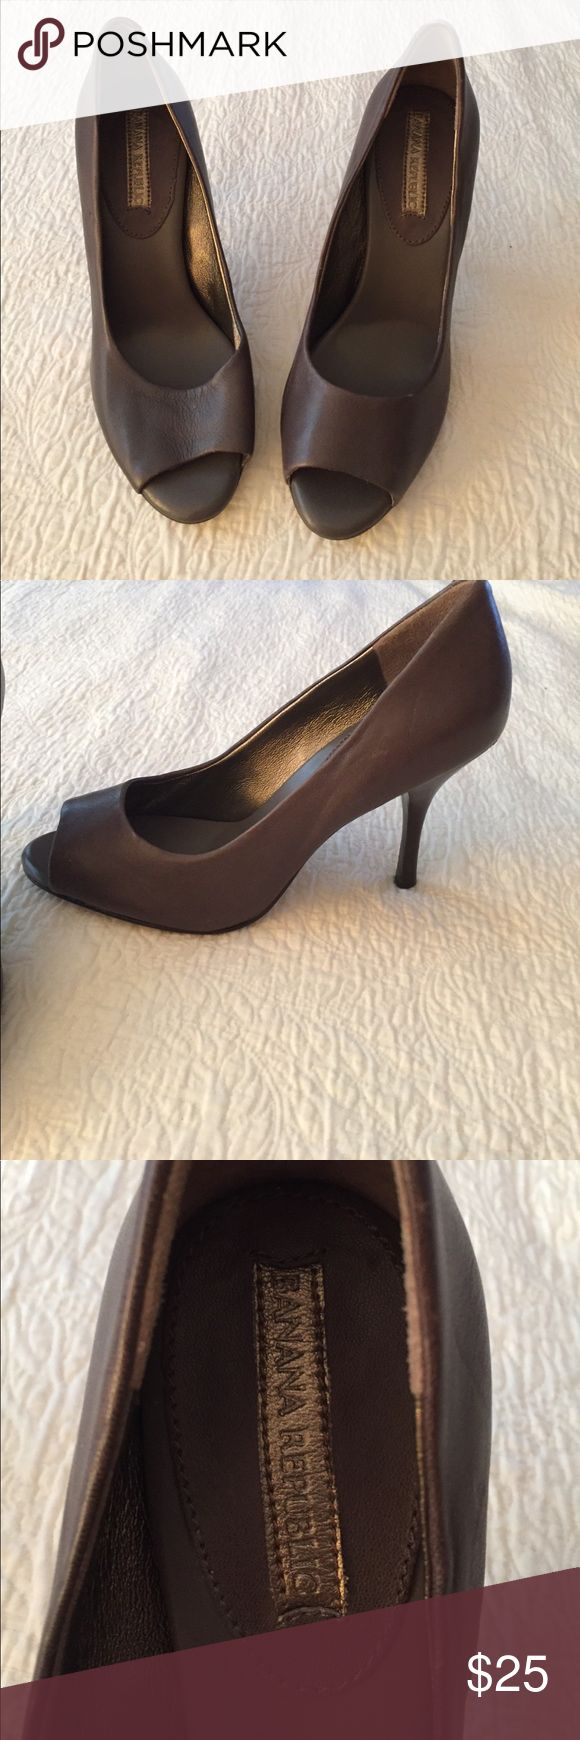 Banana Republic Heel Peep Toe, size 7, dark gray leather, slight wear on back of left heel (pictured) but not noticeable. Not much wear on bottom, 3 inch heel and in good condition. Banana Republic Shoes Heels